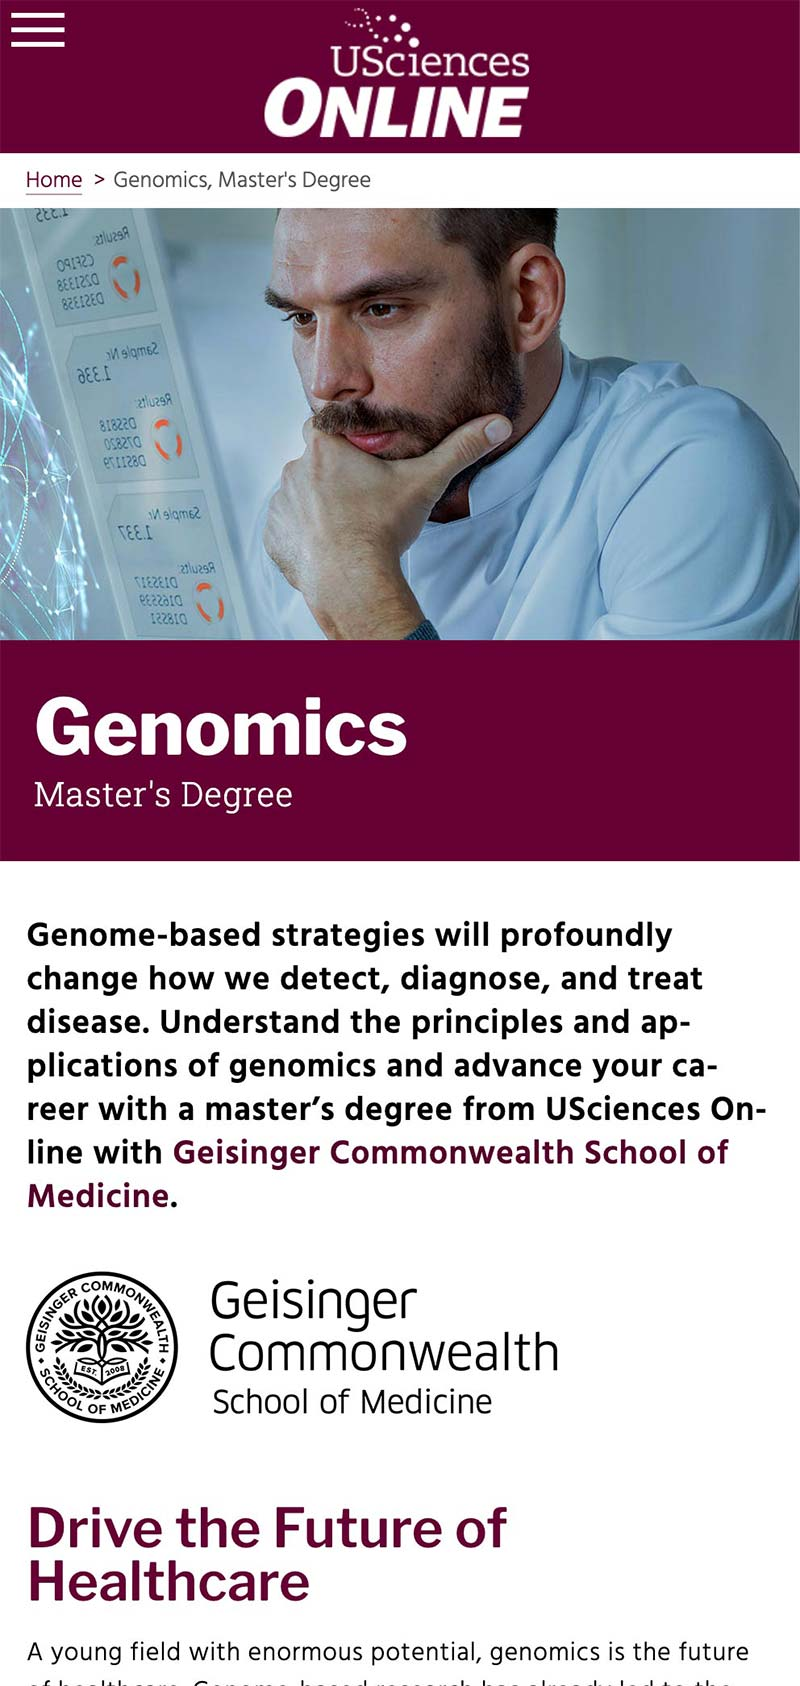 USciences Online Genomics mobile program page